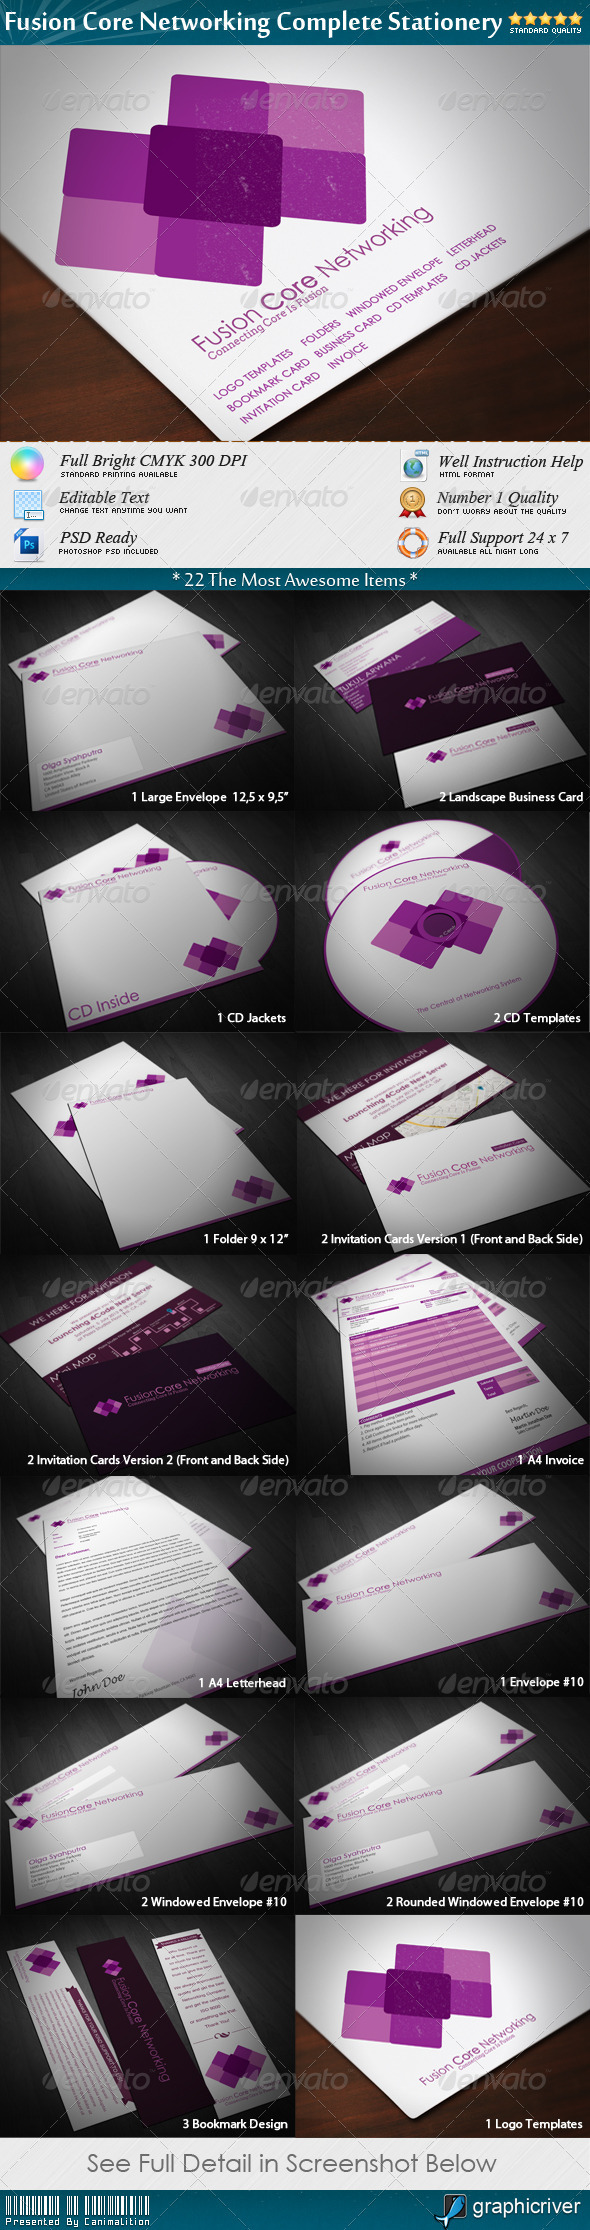 FusionCore Networking Complete Stationery - Stationery Print Templates